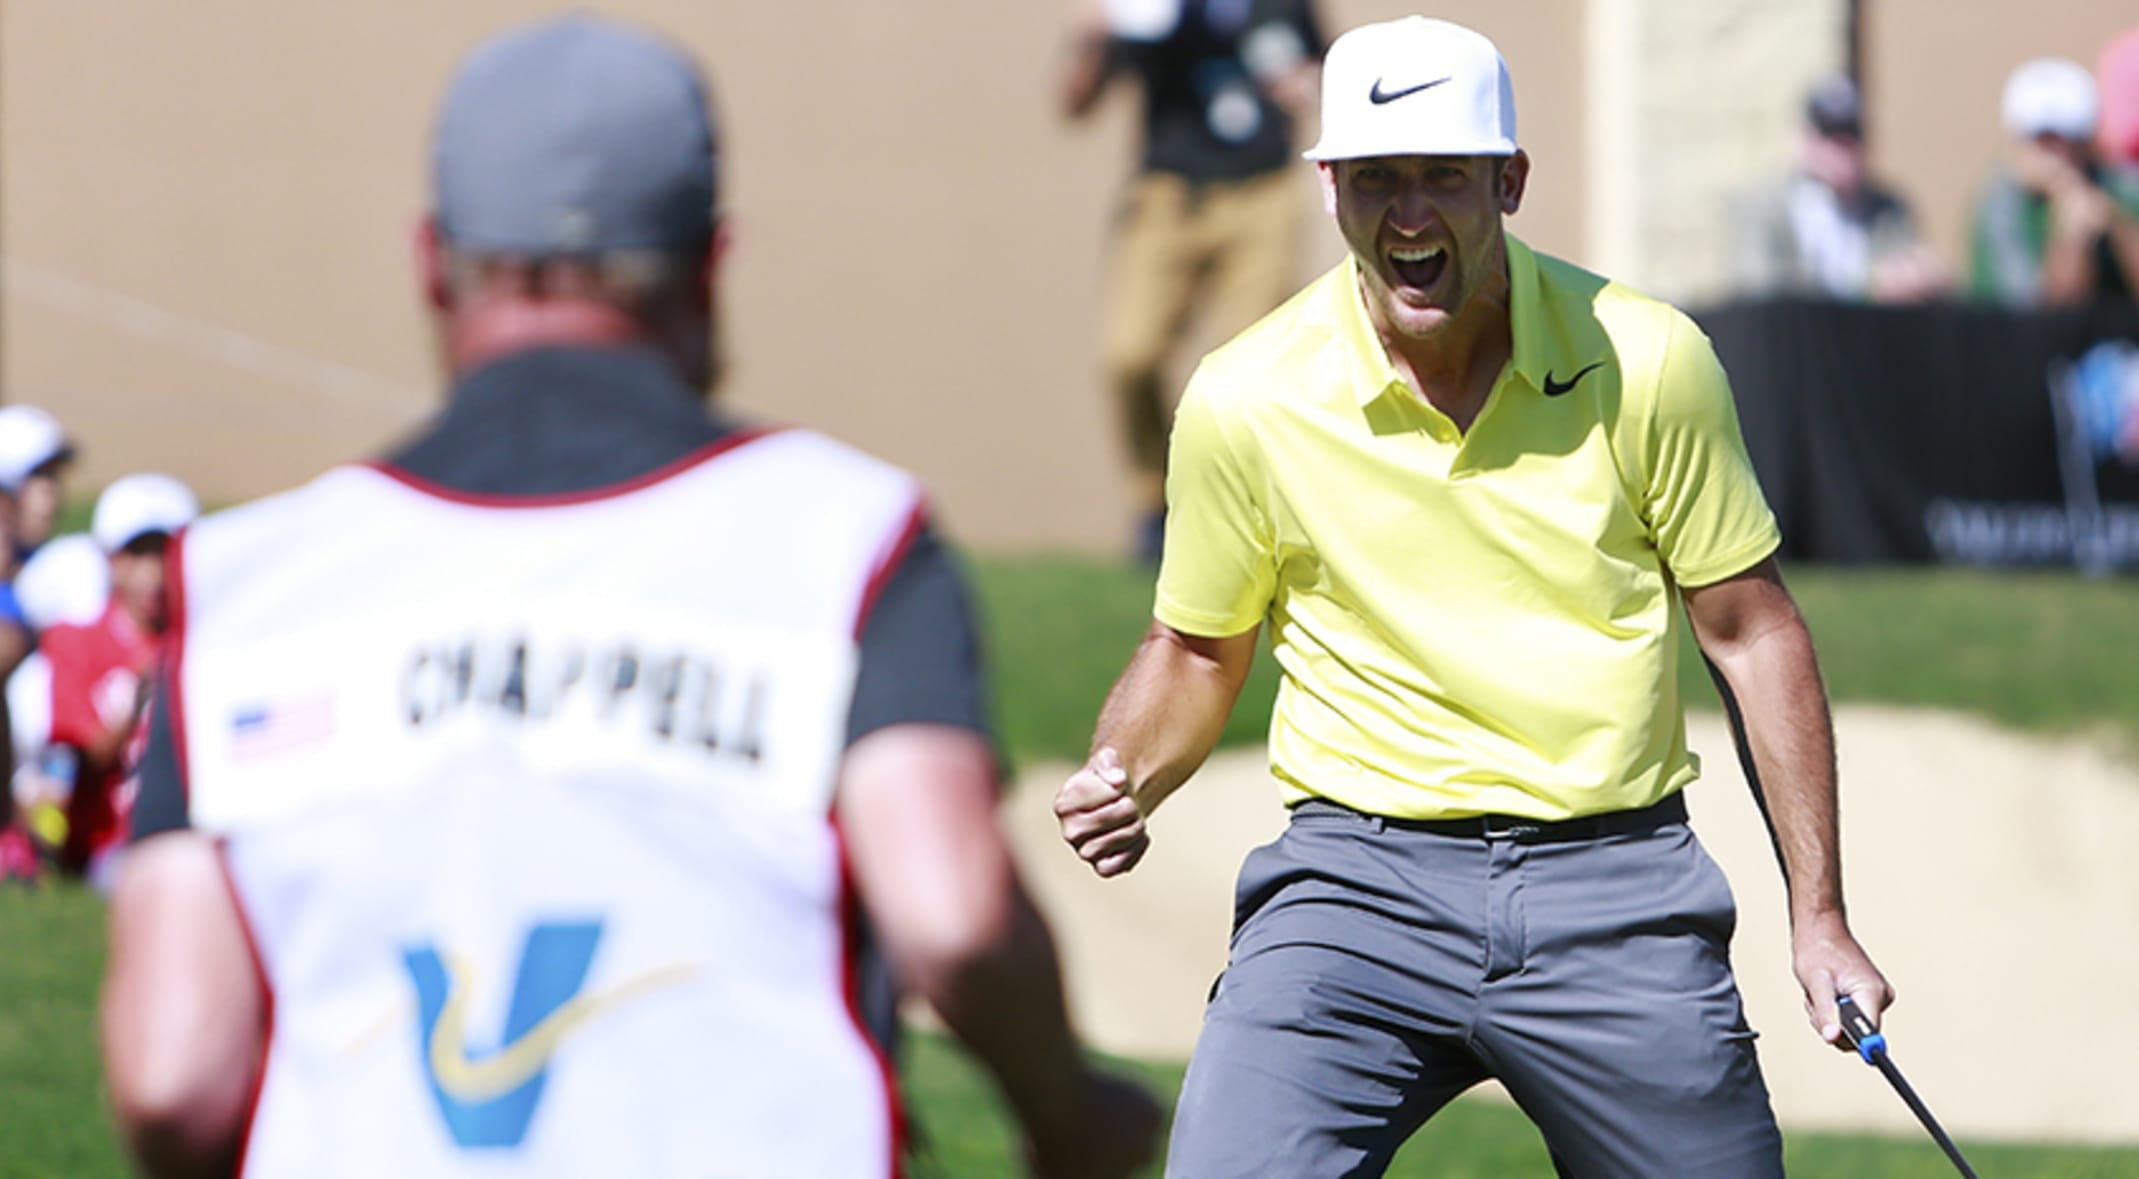 fbf7407179d Kevin Chappell captures his breakout win at Valero